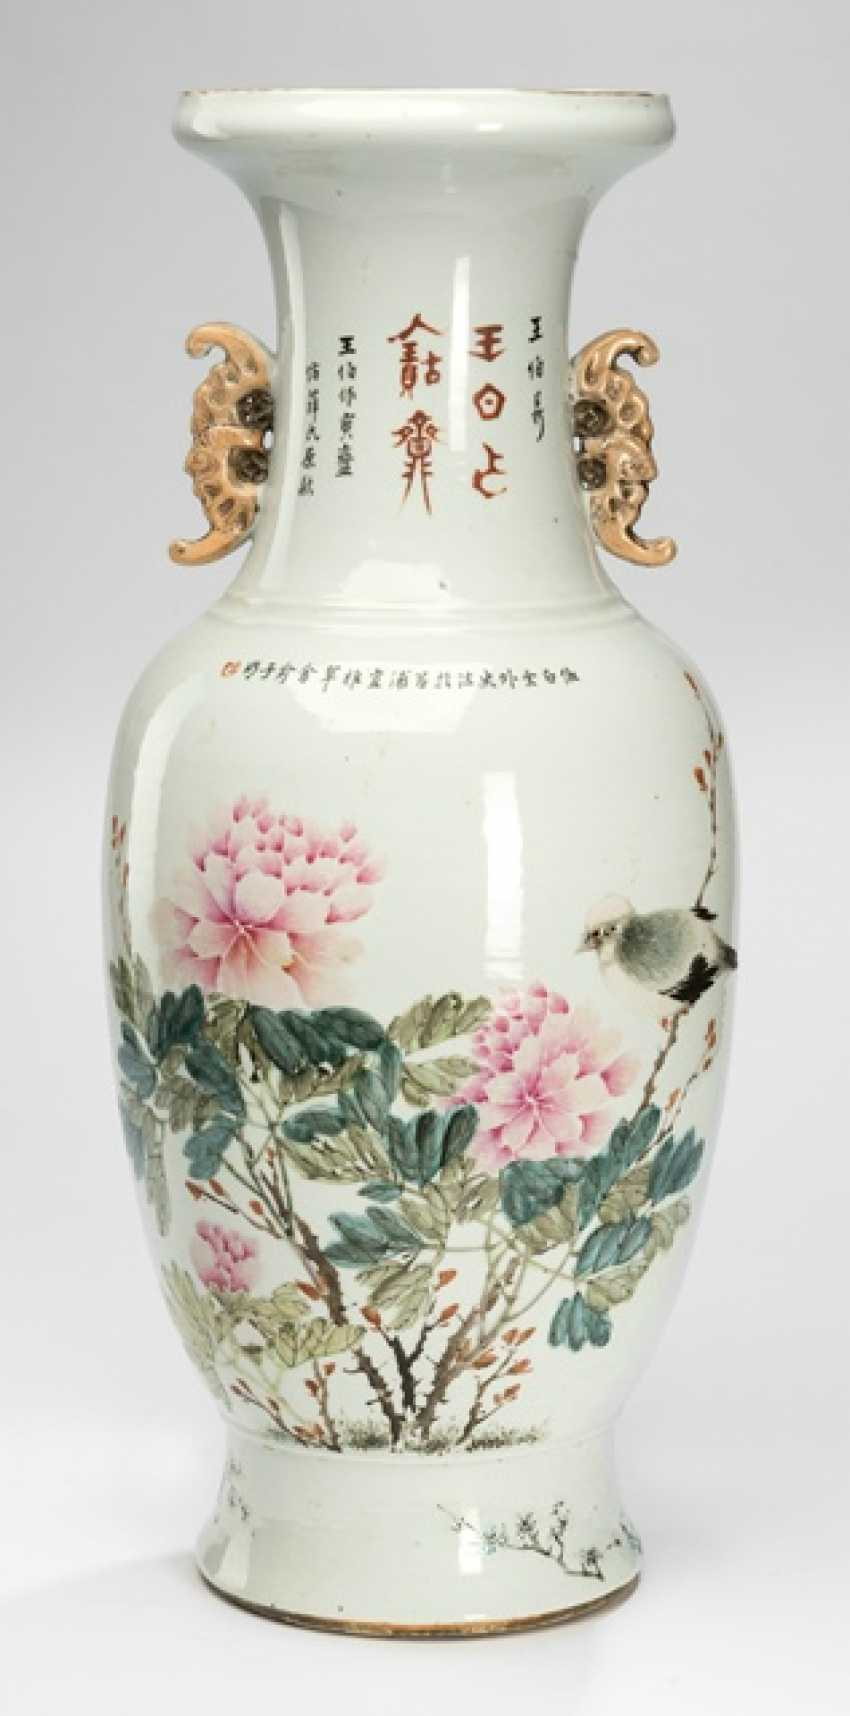 Vase made of porcelain with scholars, overleaf peonies and birds - photo 1